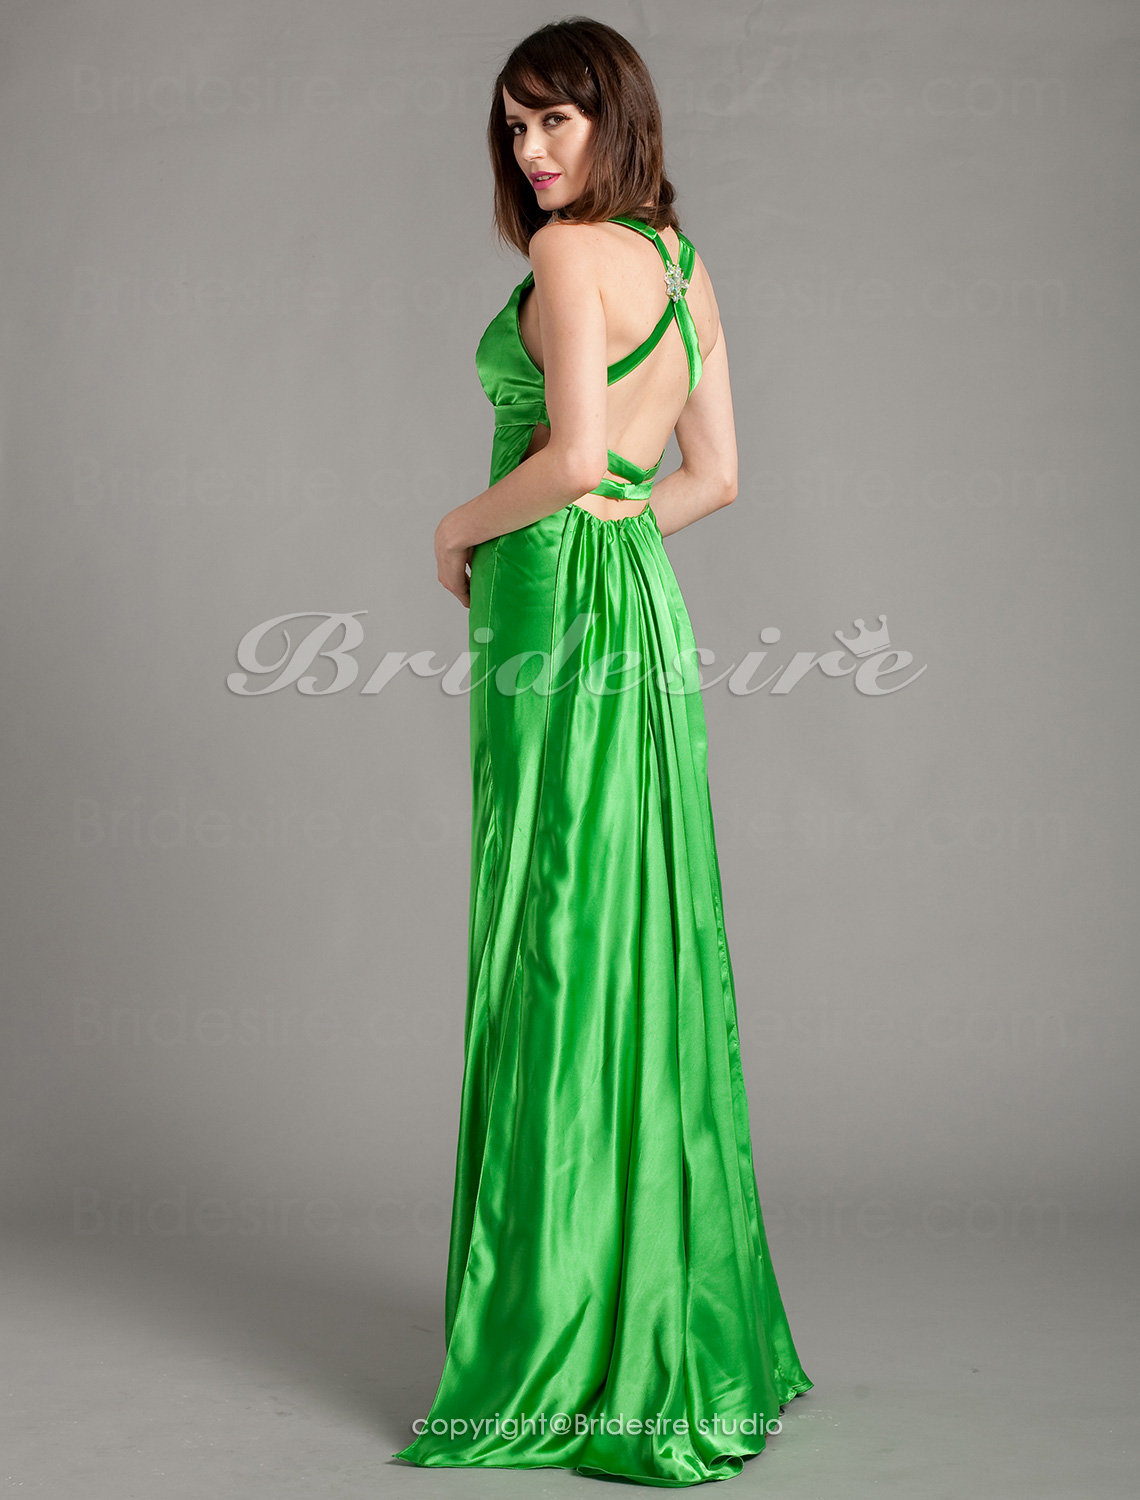 Sheath/Column Floor-length V-neck Crystal Brooch Stretch Satin Evening Dress